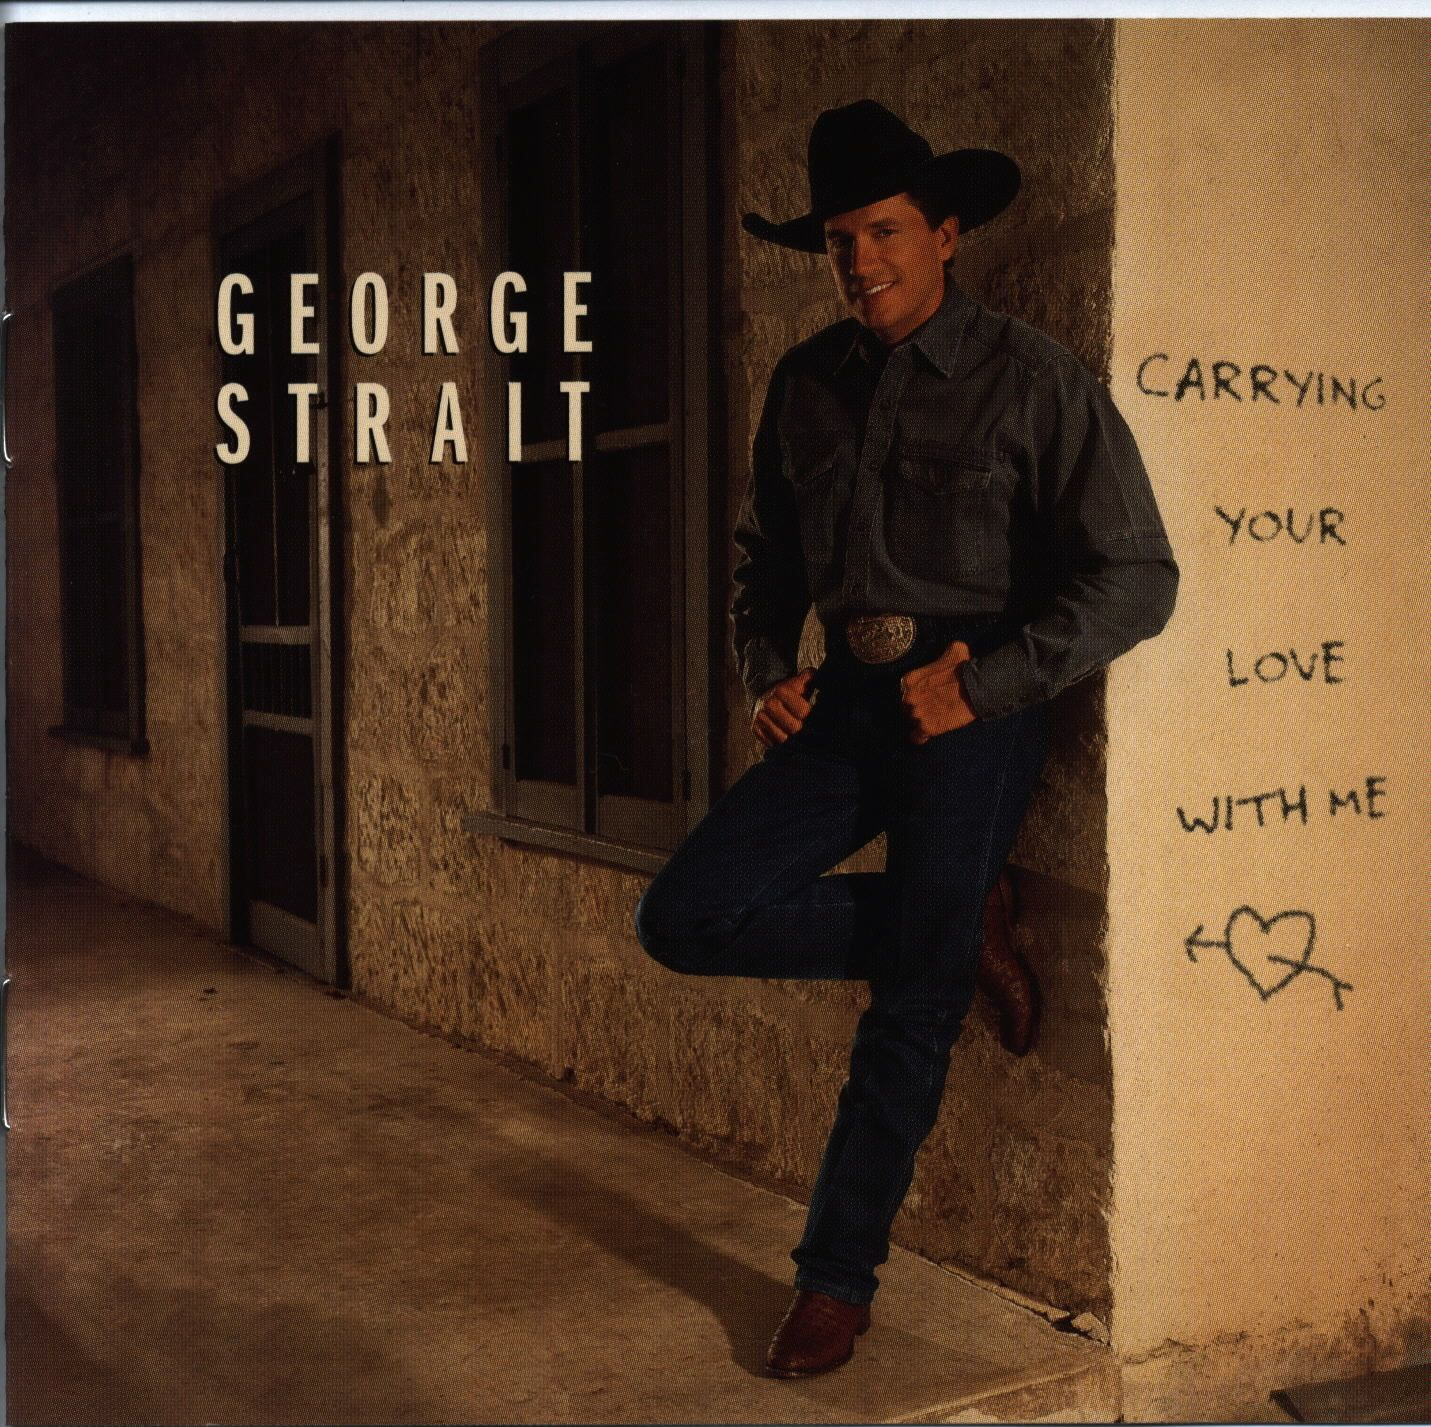 George Strait - Carrying Your Love With Me - Album Cover